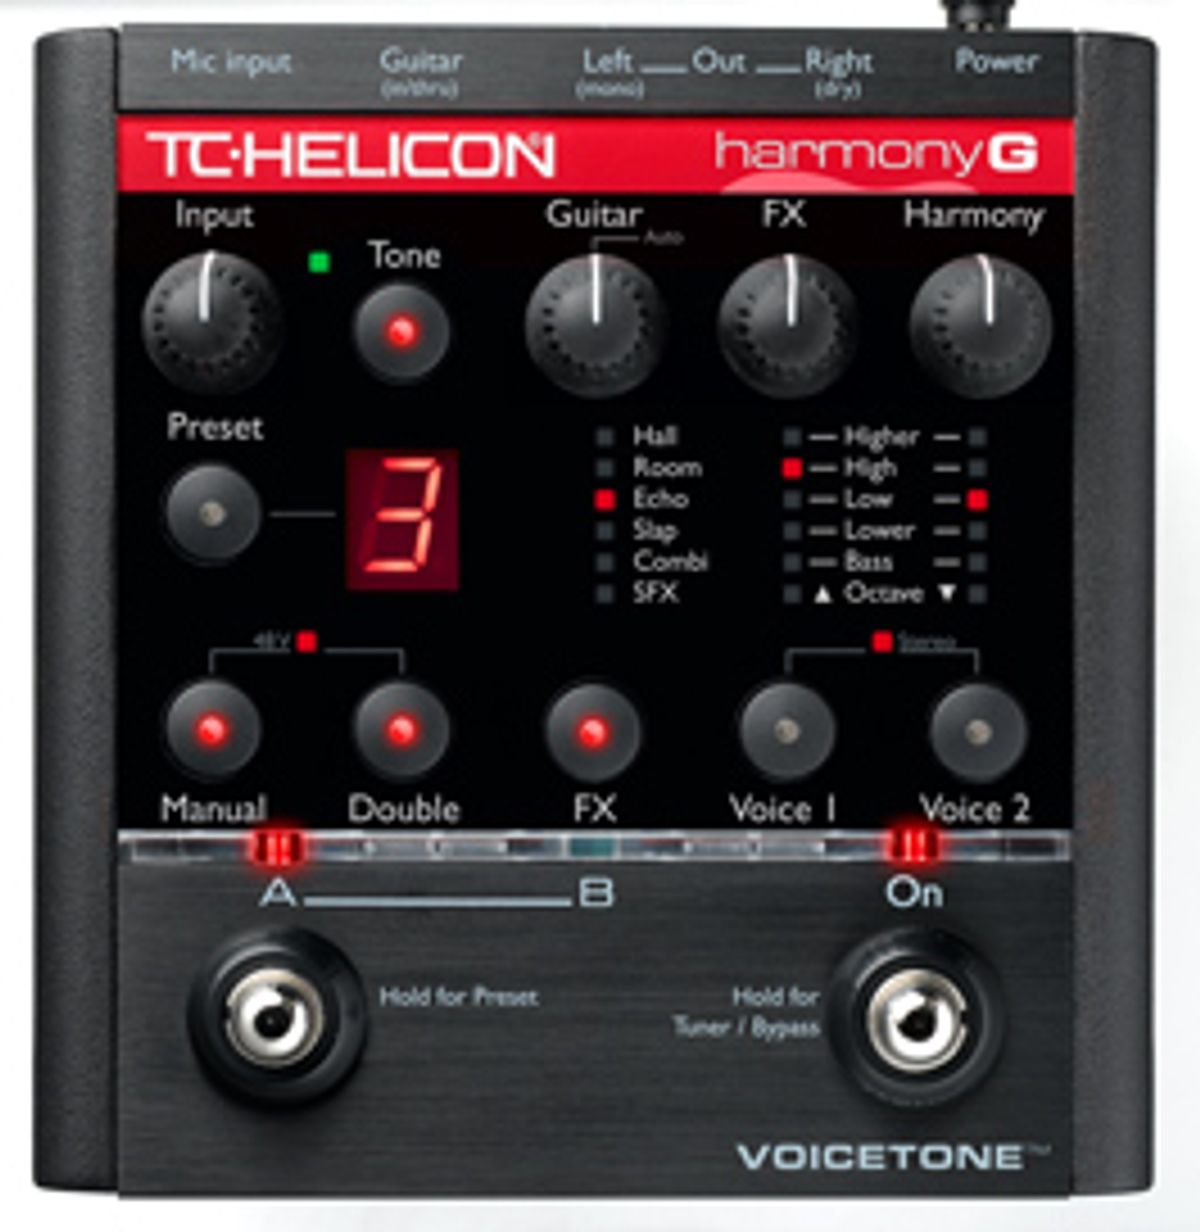 For Singing Guitarists: TC Helicon's Harmony G